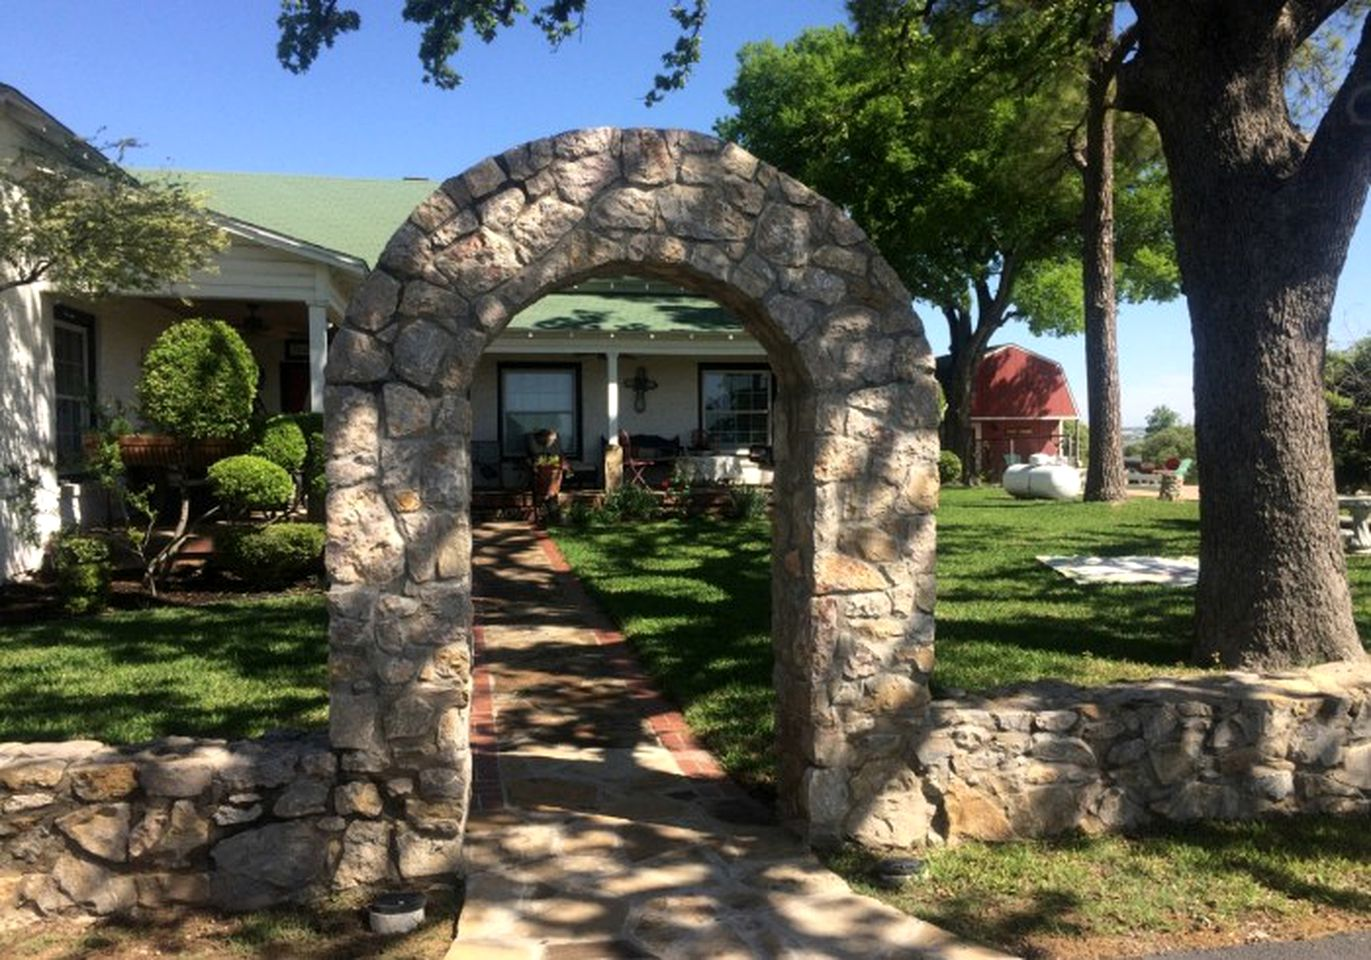 Entrance to a bed and breakfast in Azle, Texas.